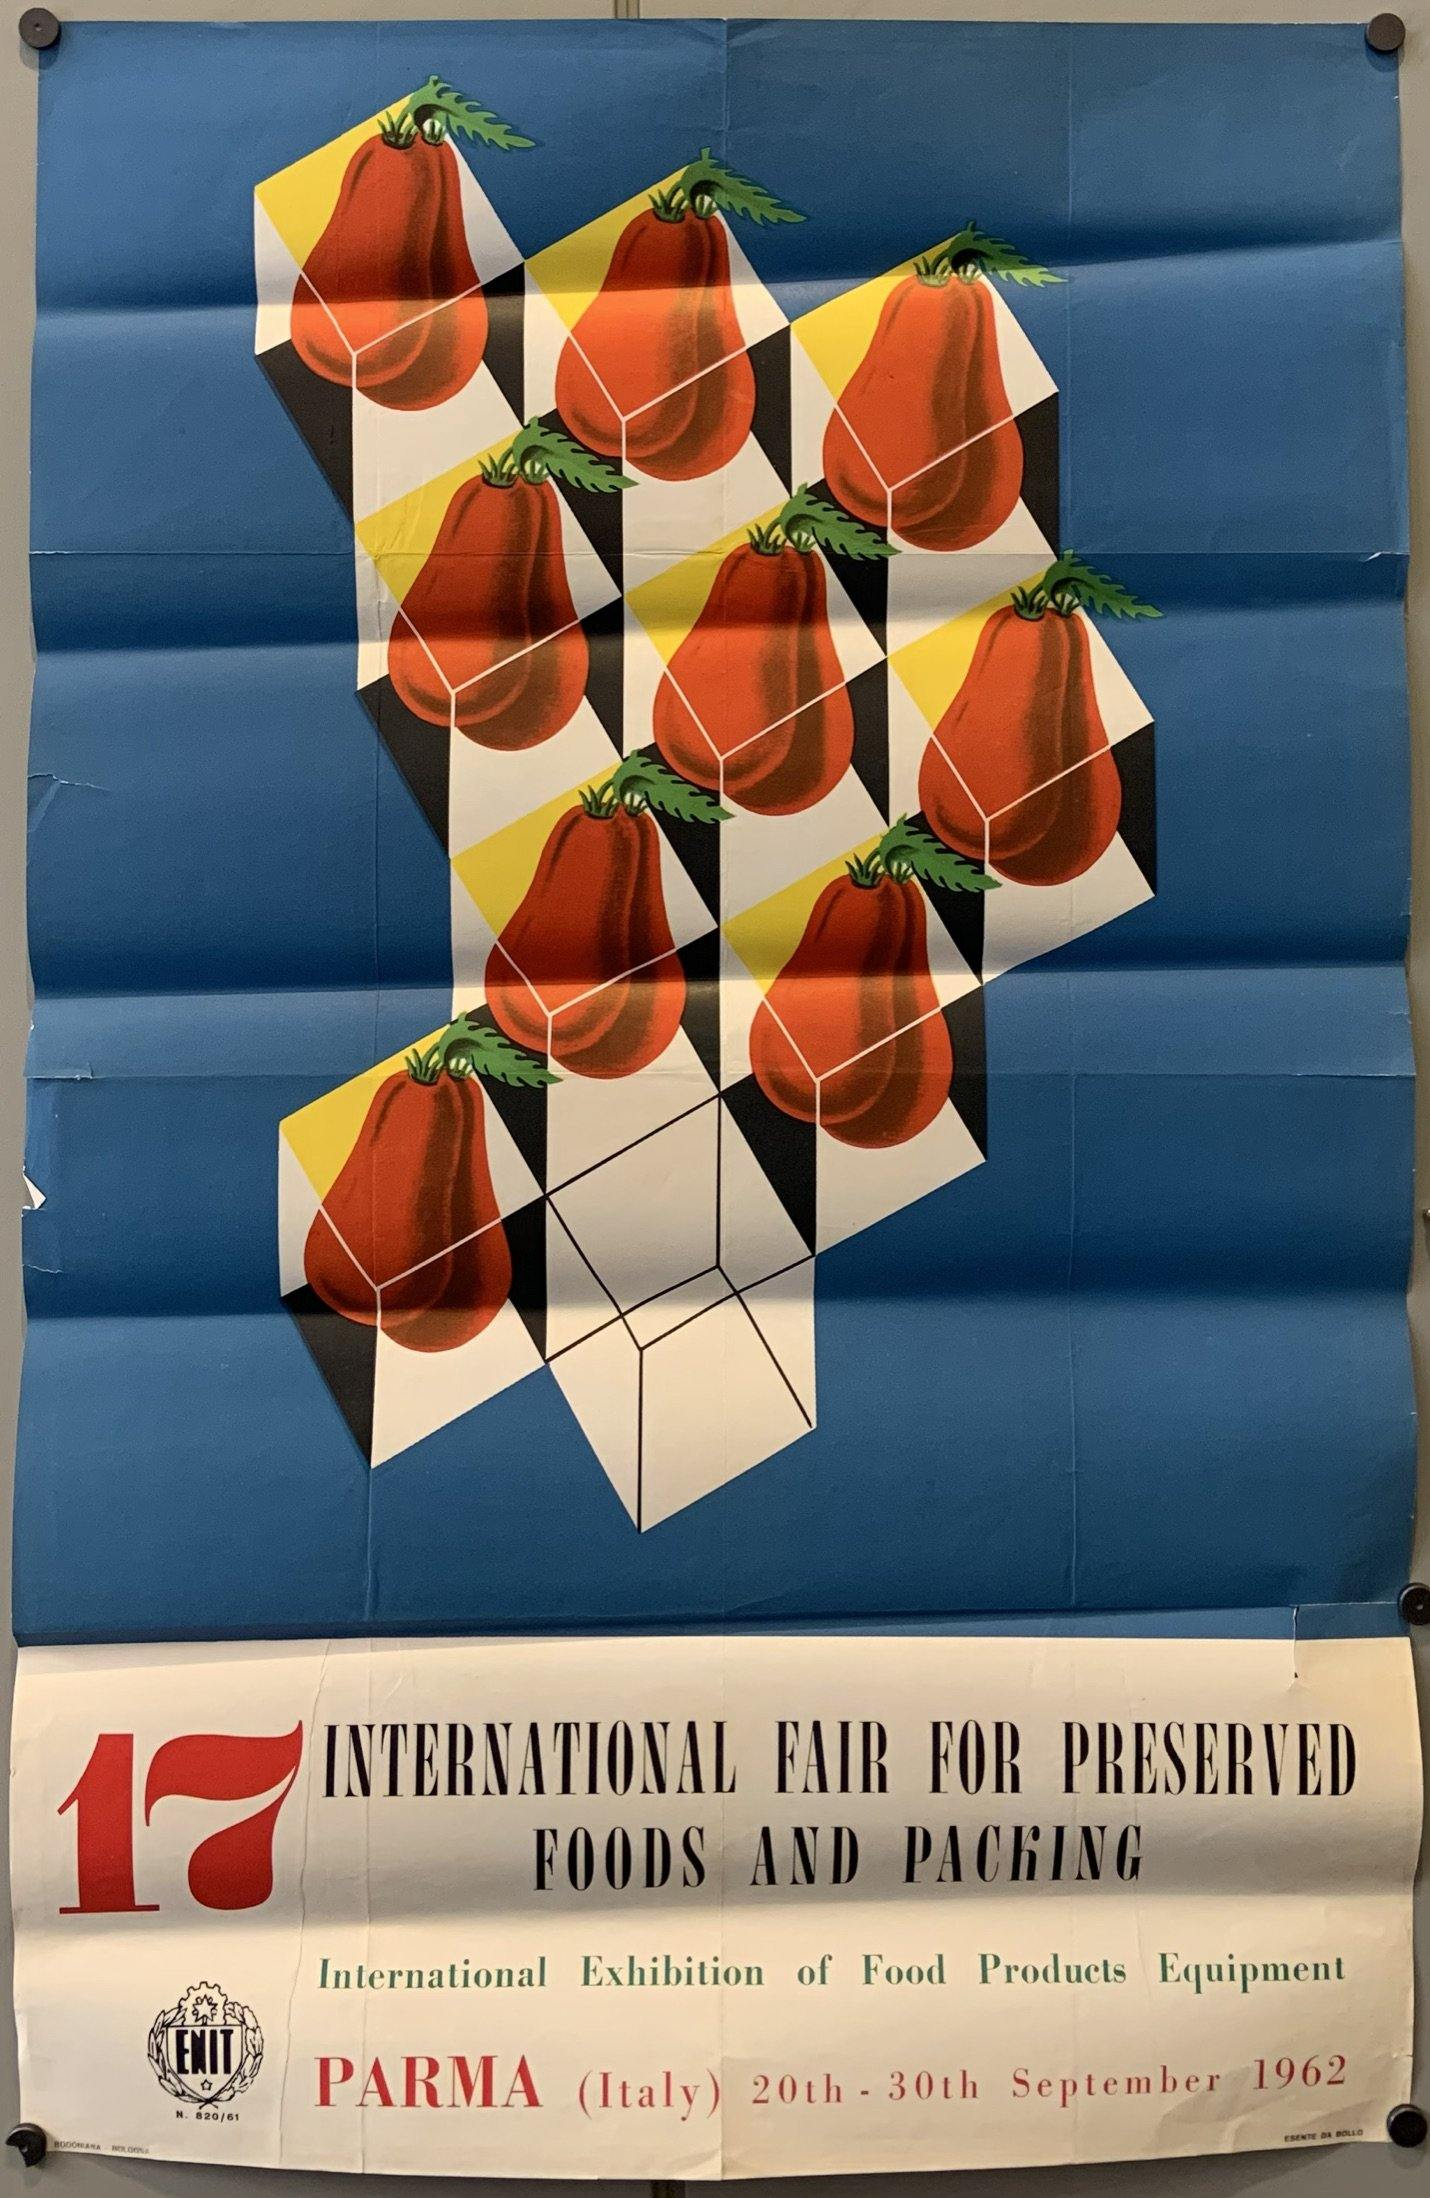 17th International Fair for Preserved Foods and Packing Poster - Poster Museum